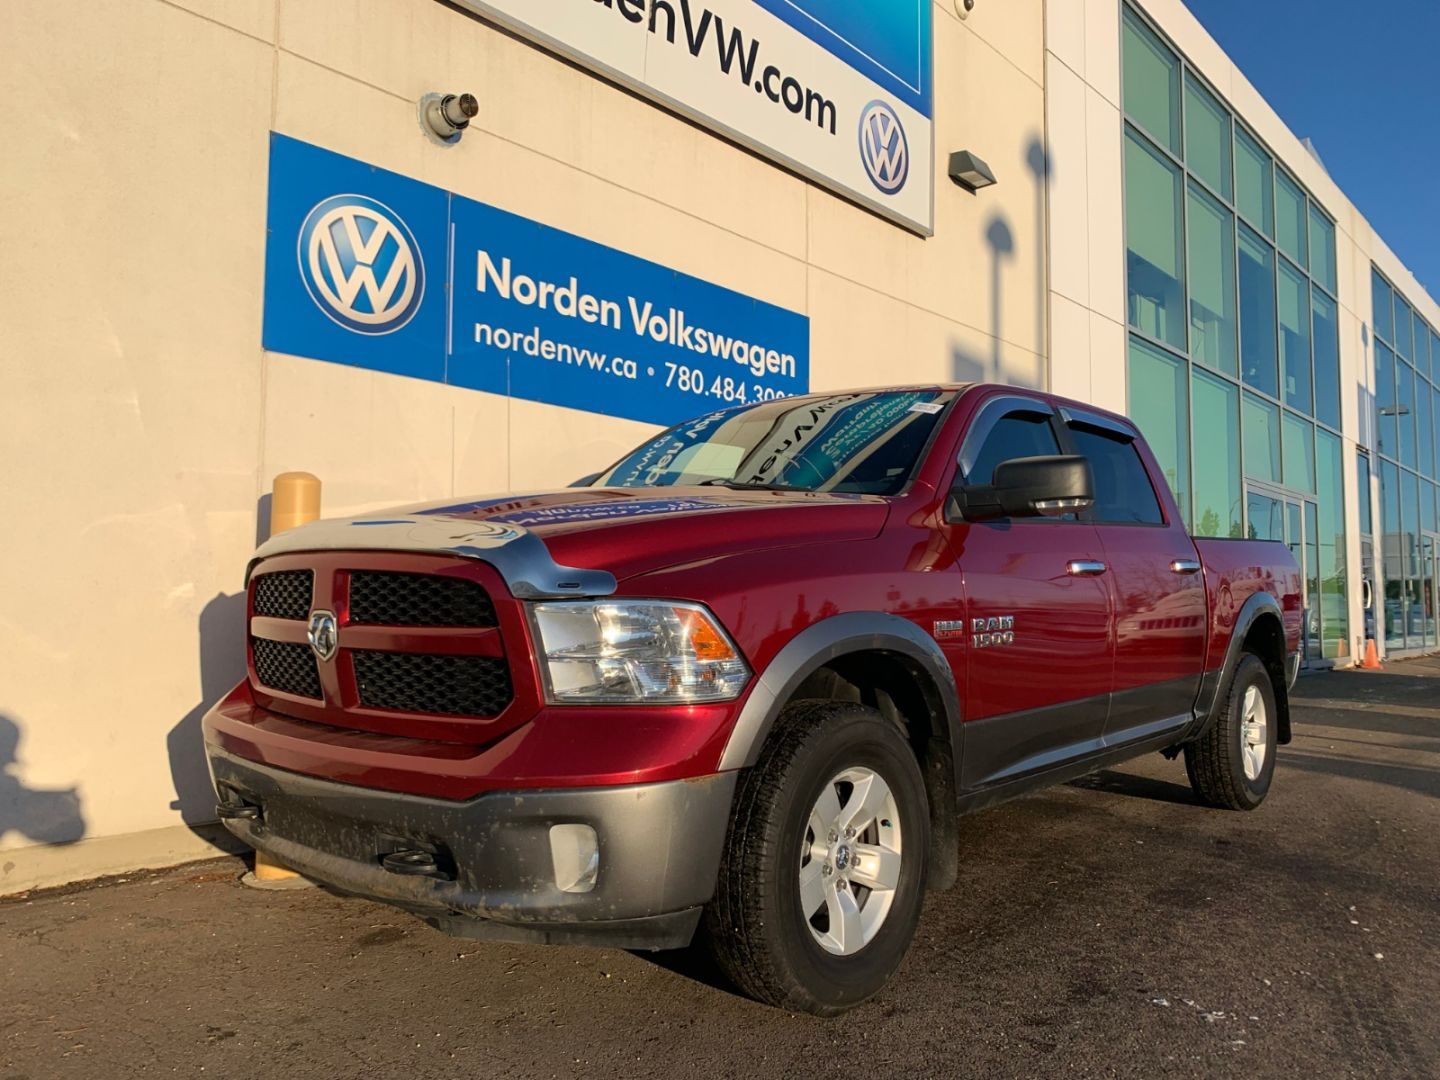 2013 Ram 1500 Outdoorsman for sale in Edmonton, Alberta